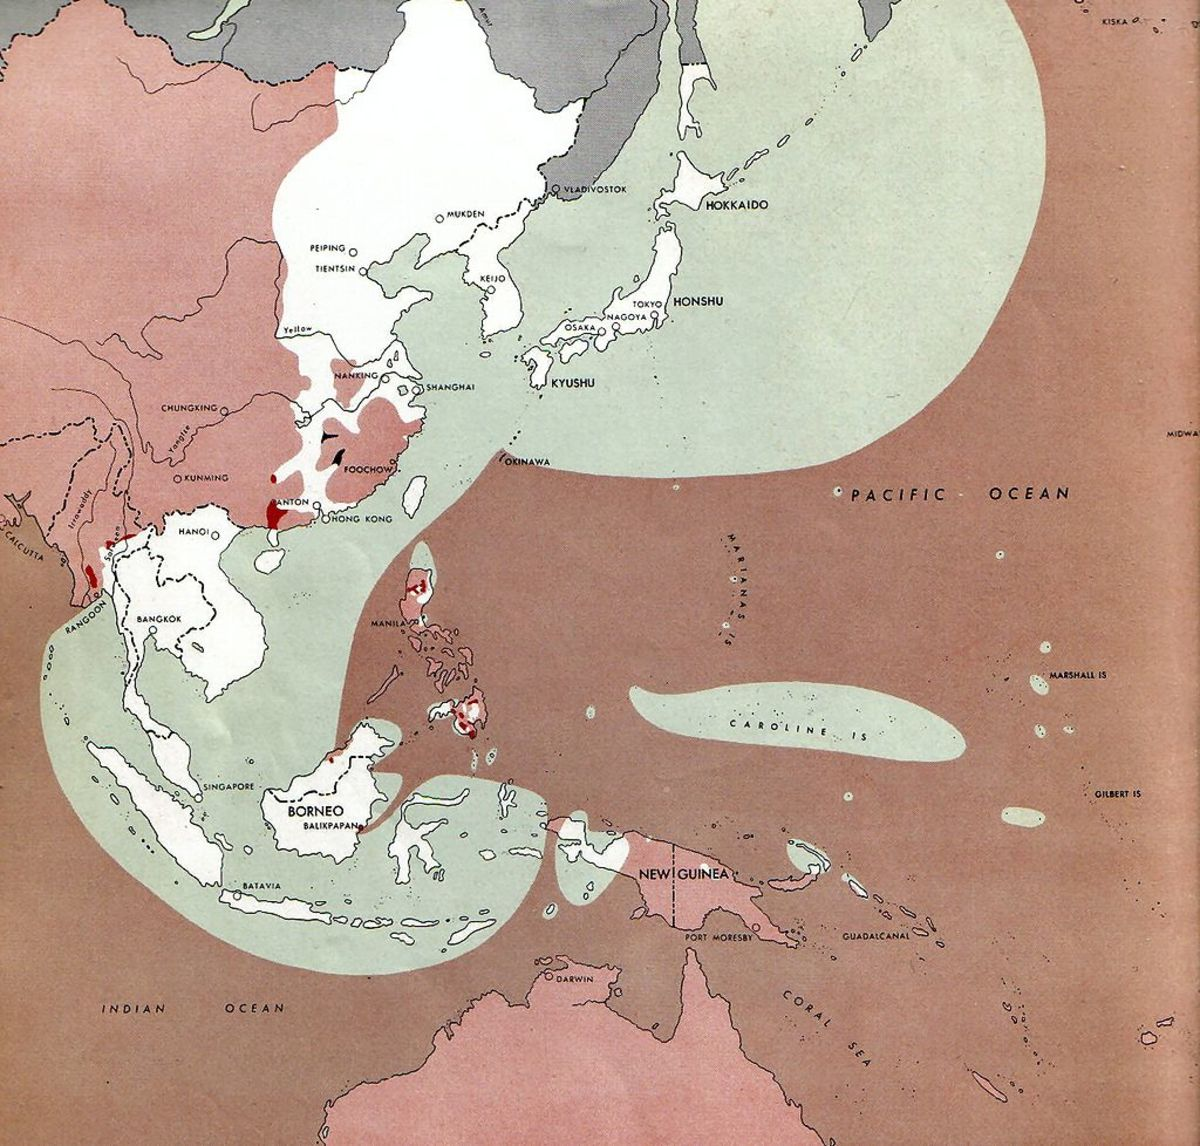 What was left of Japan's Empire the 1st of August 1945, they still controlled Southeast Asia , Korea, Manchuria, and all the major cities along the eastern coast of China.